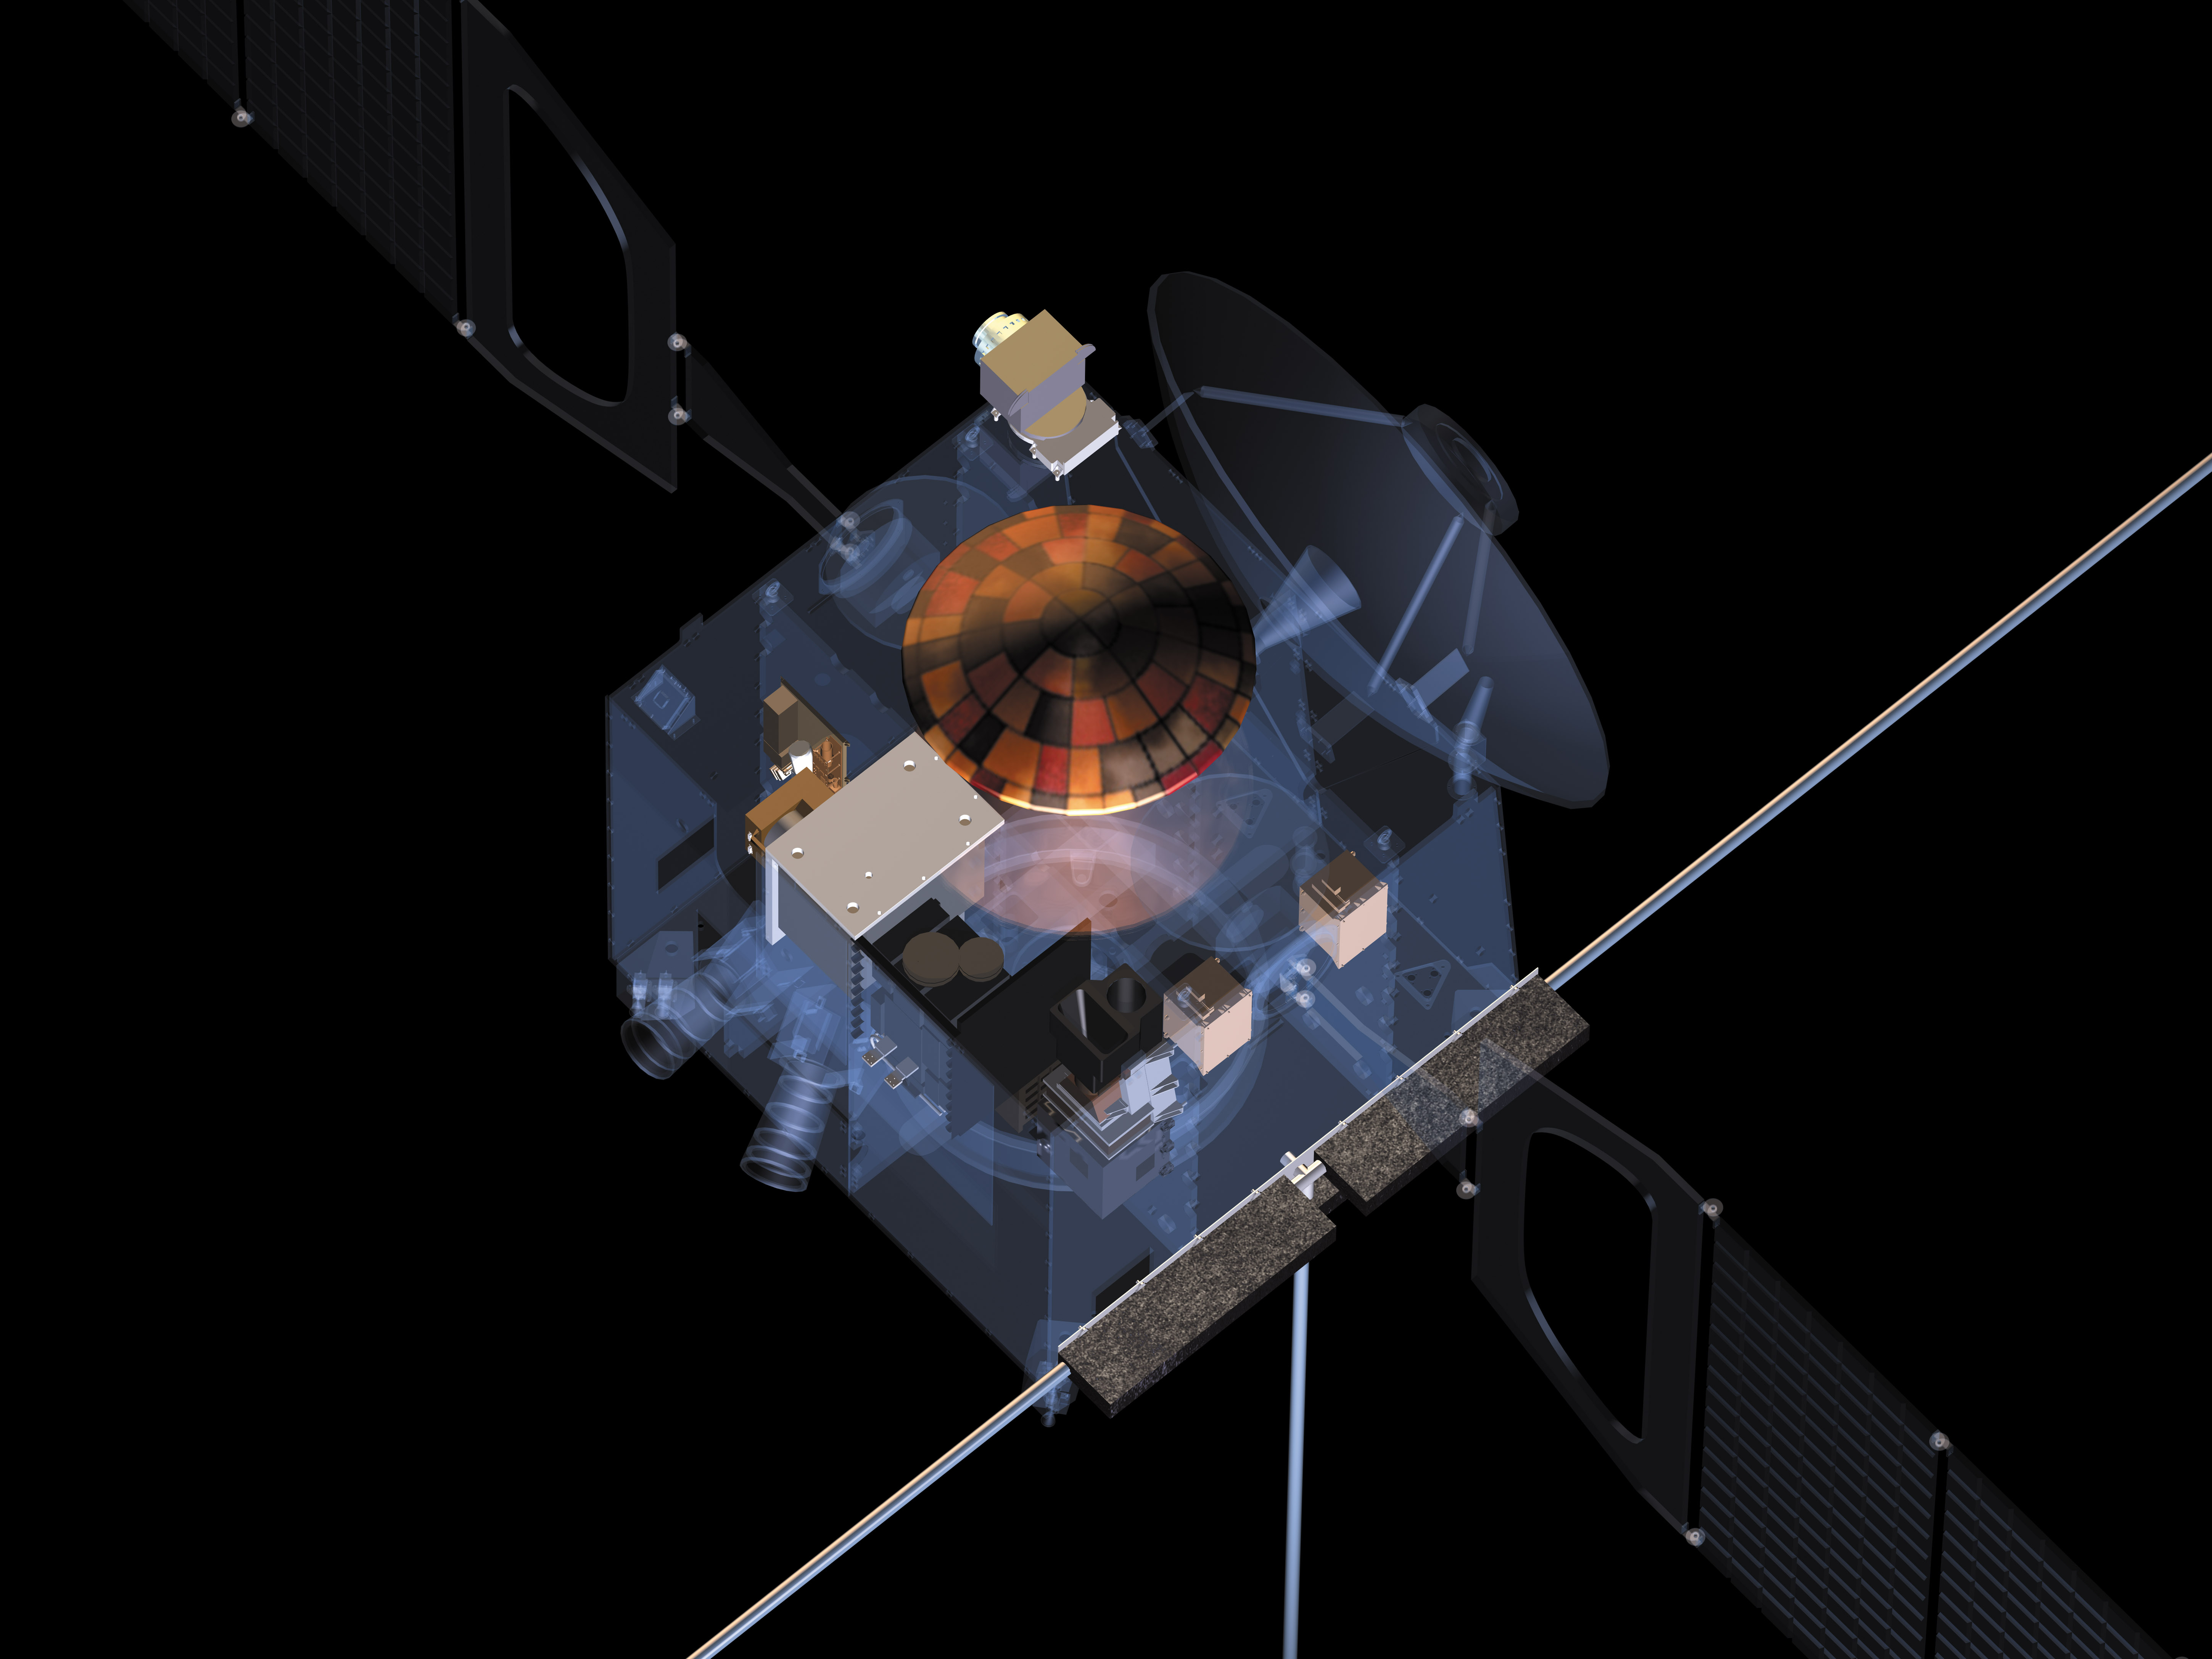 esa science amp technology mars express - HD 5798×4349